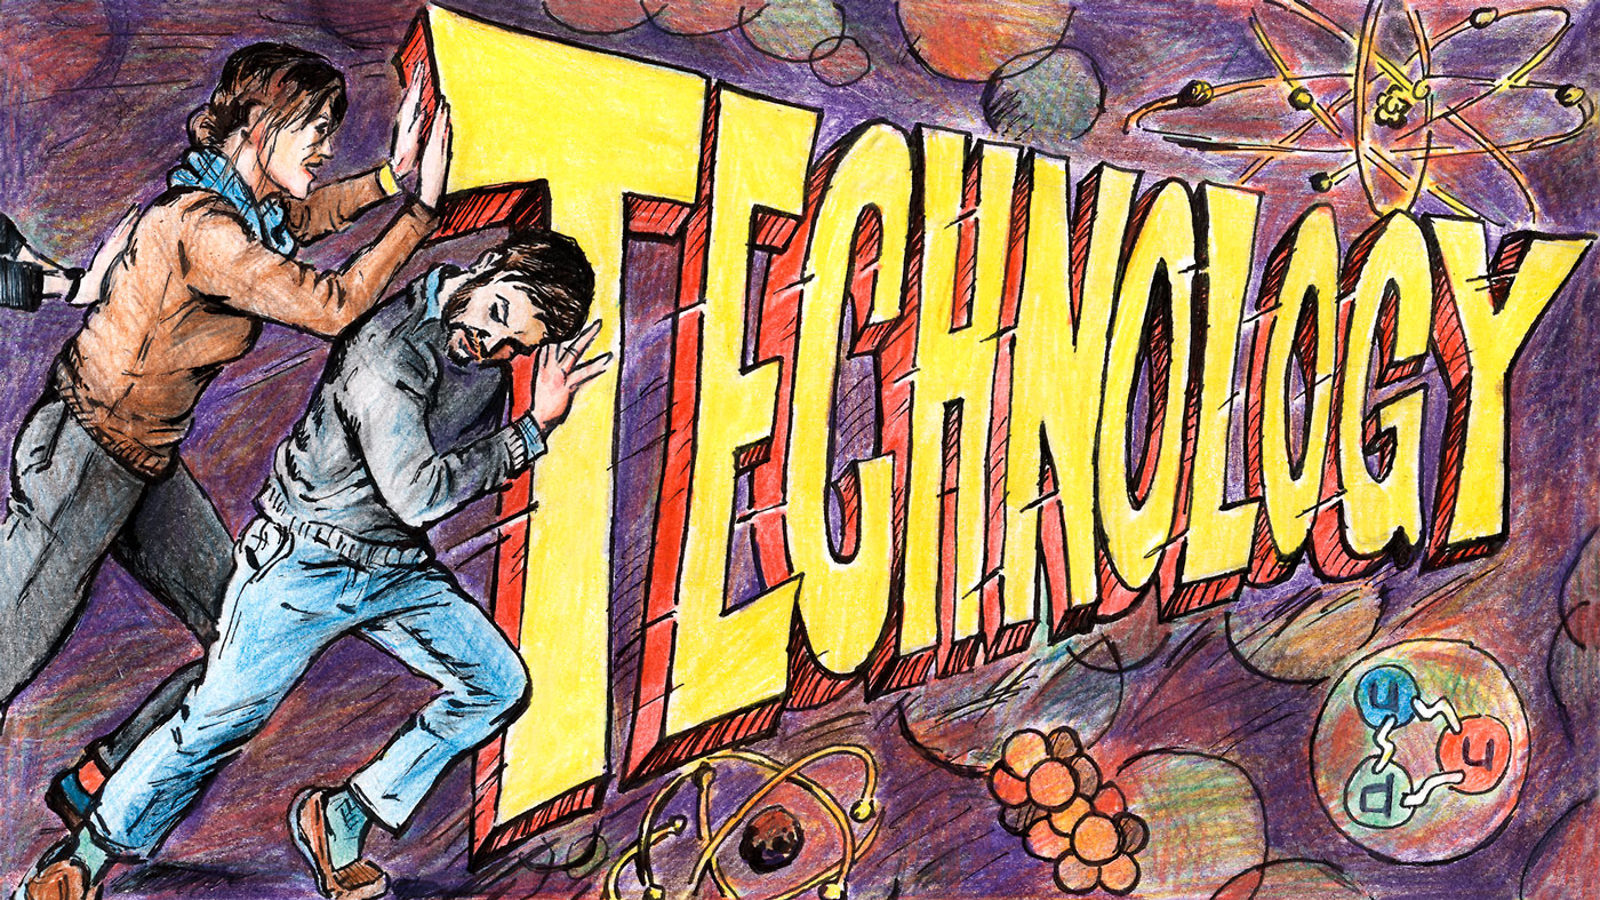 """Illustration of Instrumentation Frontier: Two men pushing the word """"Technology"""""""